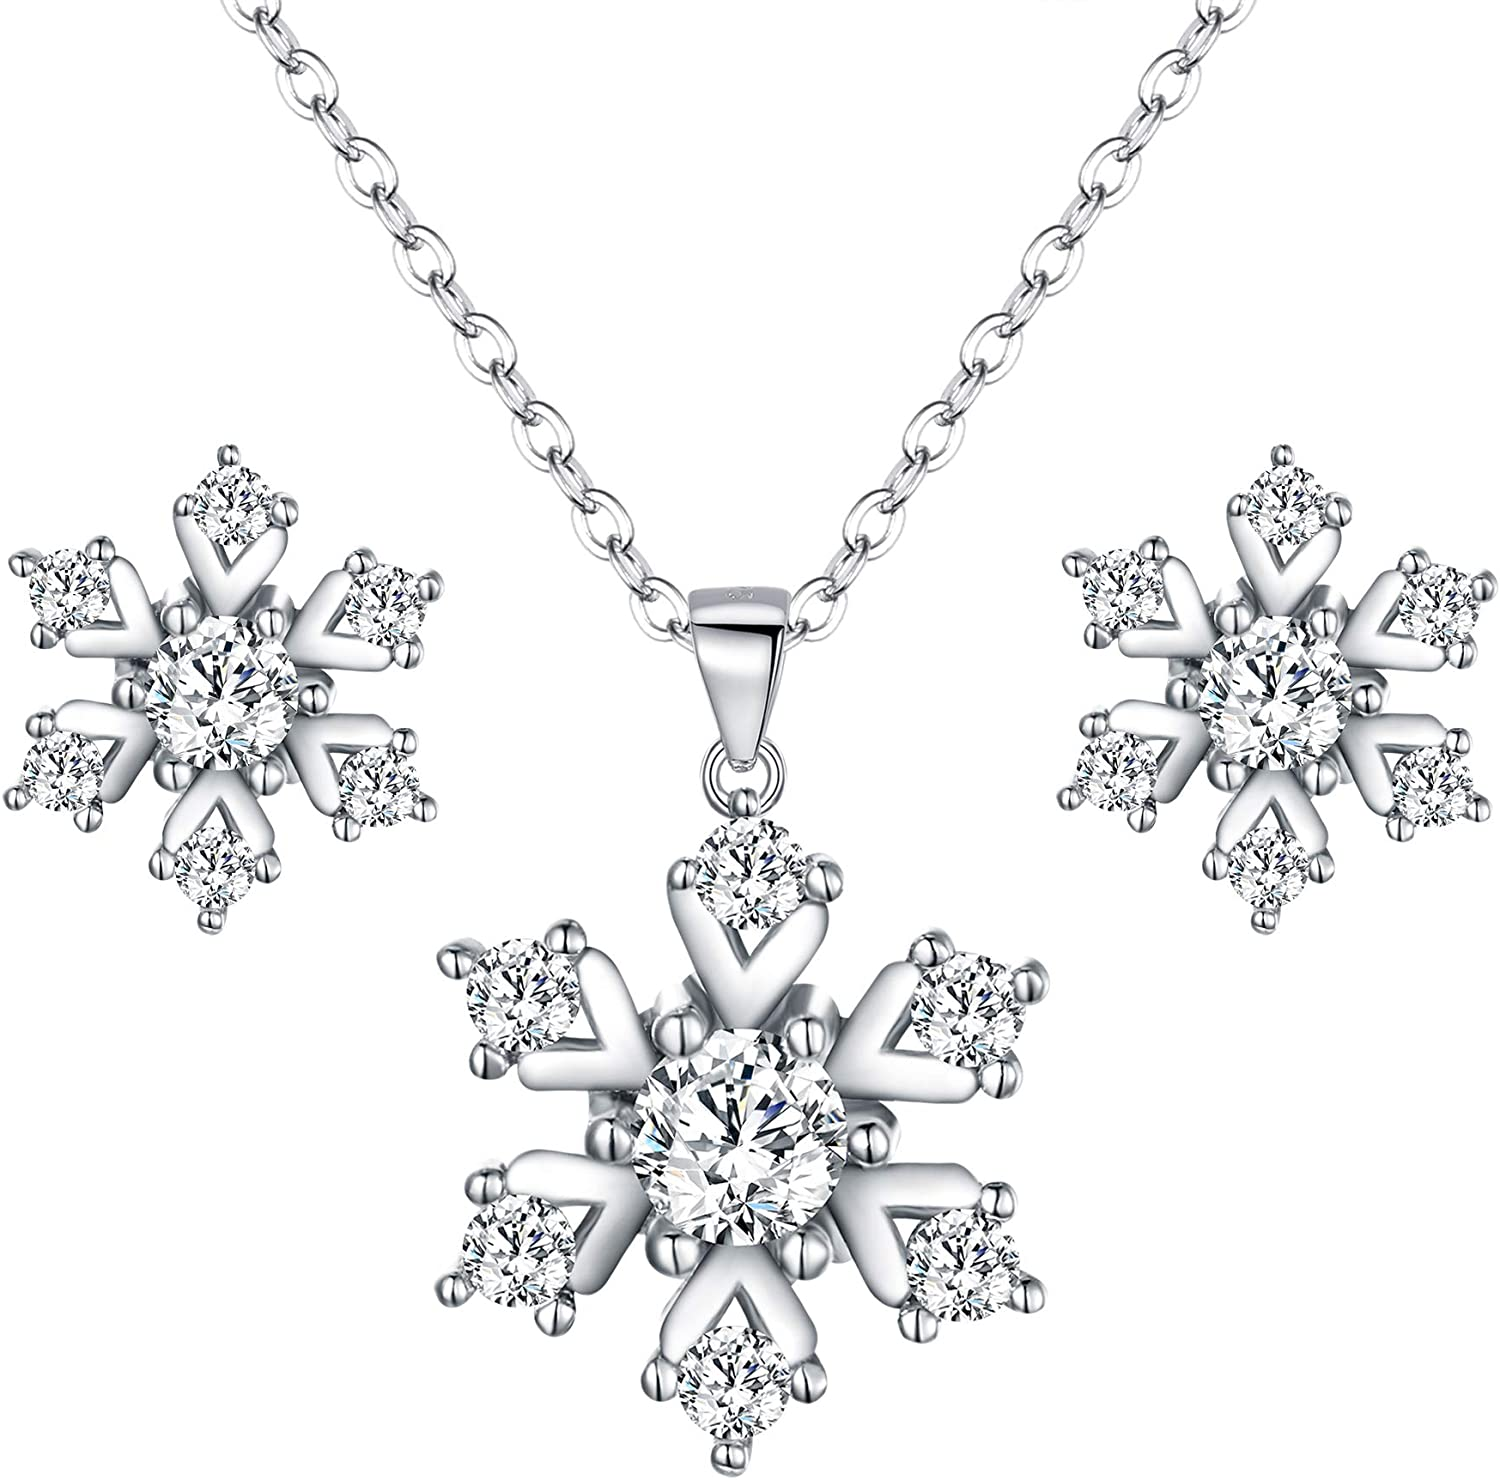 Snowflake Pendant Necklace,Haluoo 925 Sterling Silver Pendant Necklace Women Delicate Rhinestone Snowflake Pendant Chain Dainty Cubic Zirconia Romantic Lewelry Gift Xmas Gifts